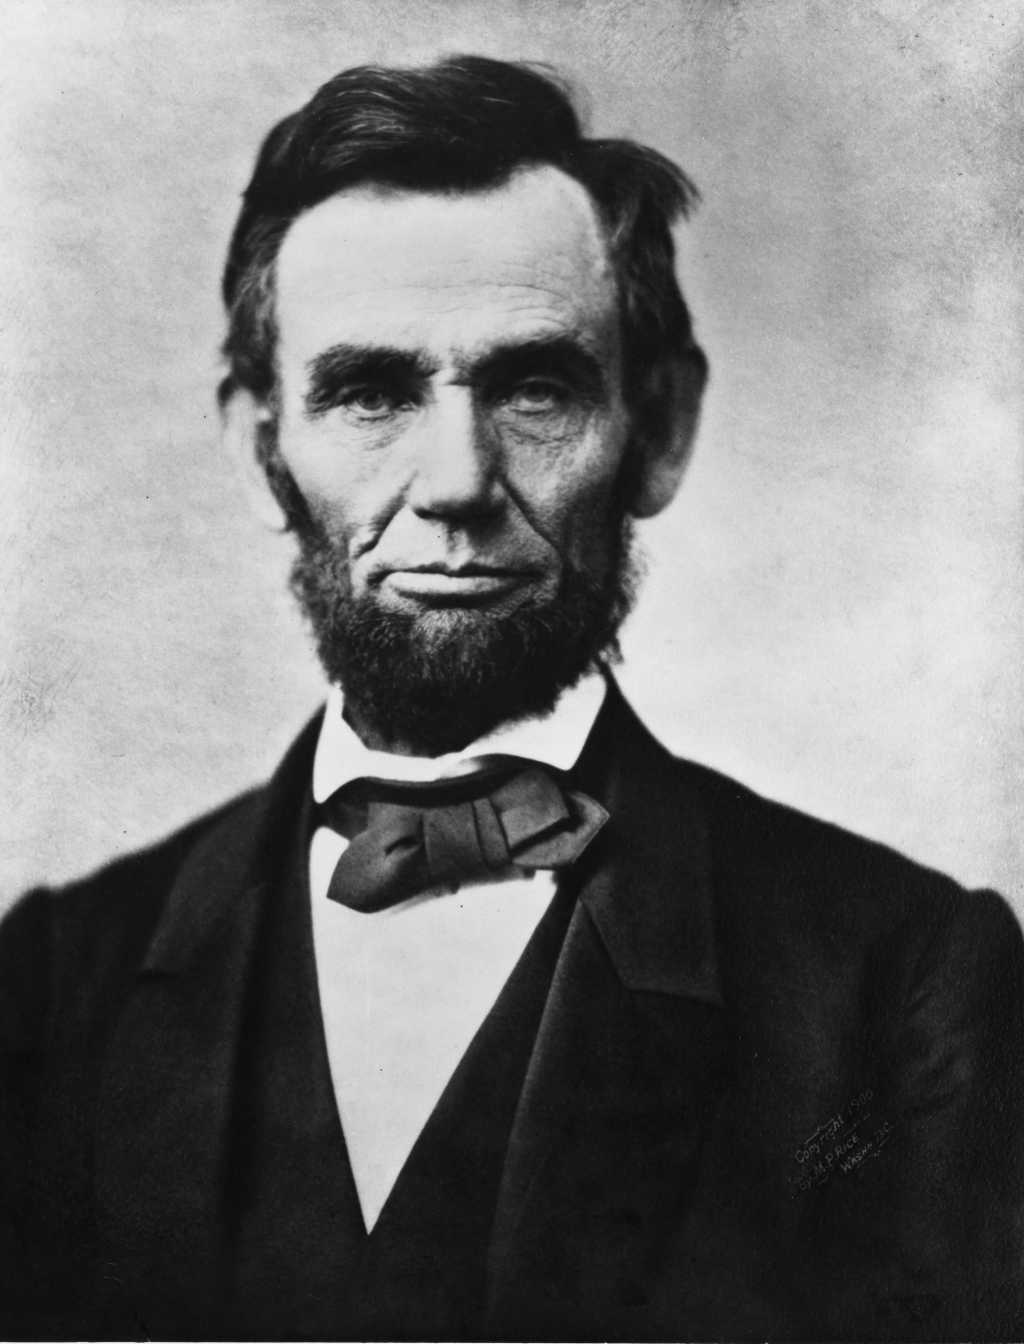 http://fathurrahmano.files.wordpress.com/2010/11/abraham_lincoln1.jpg